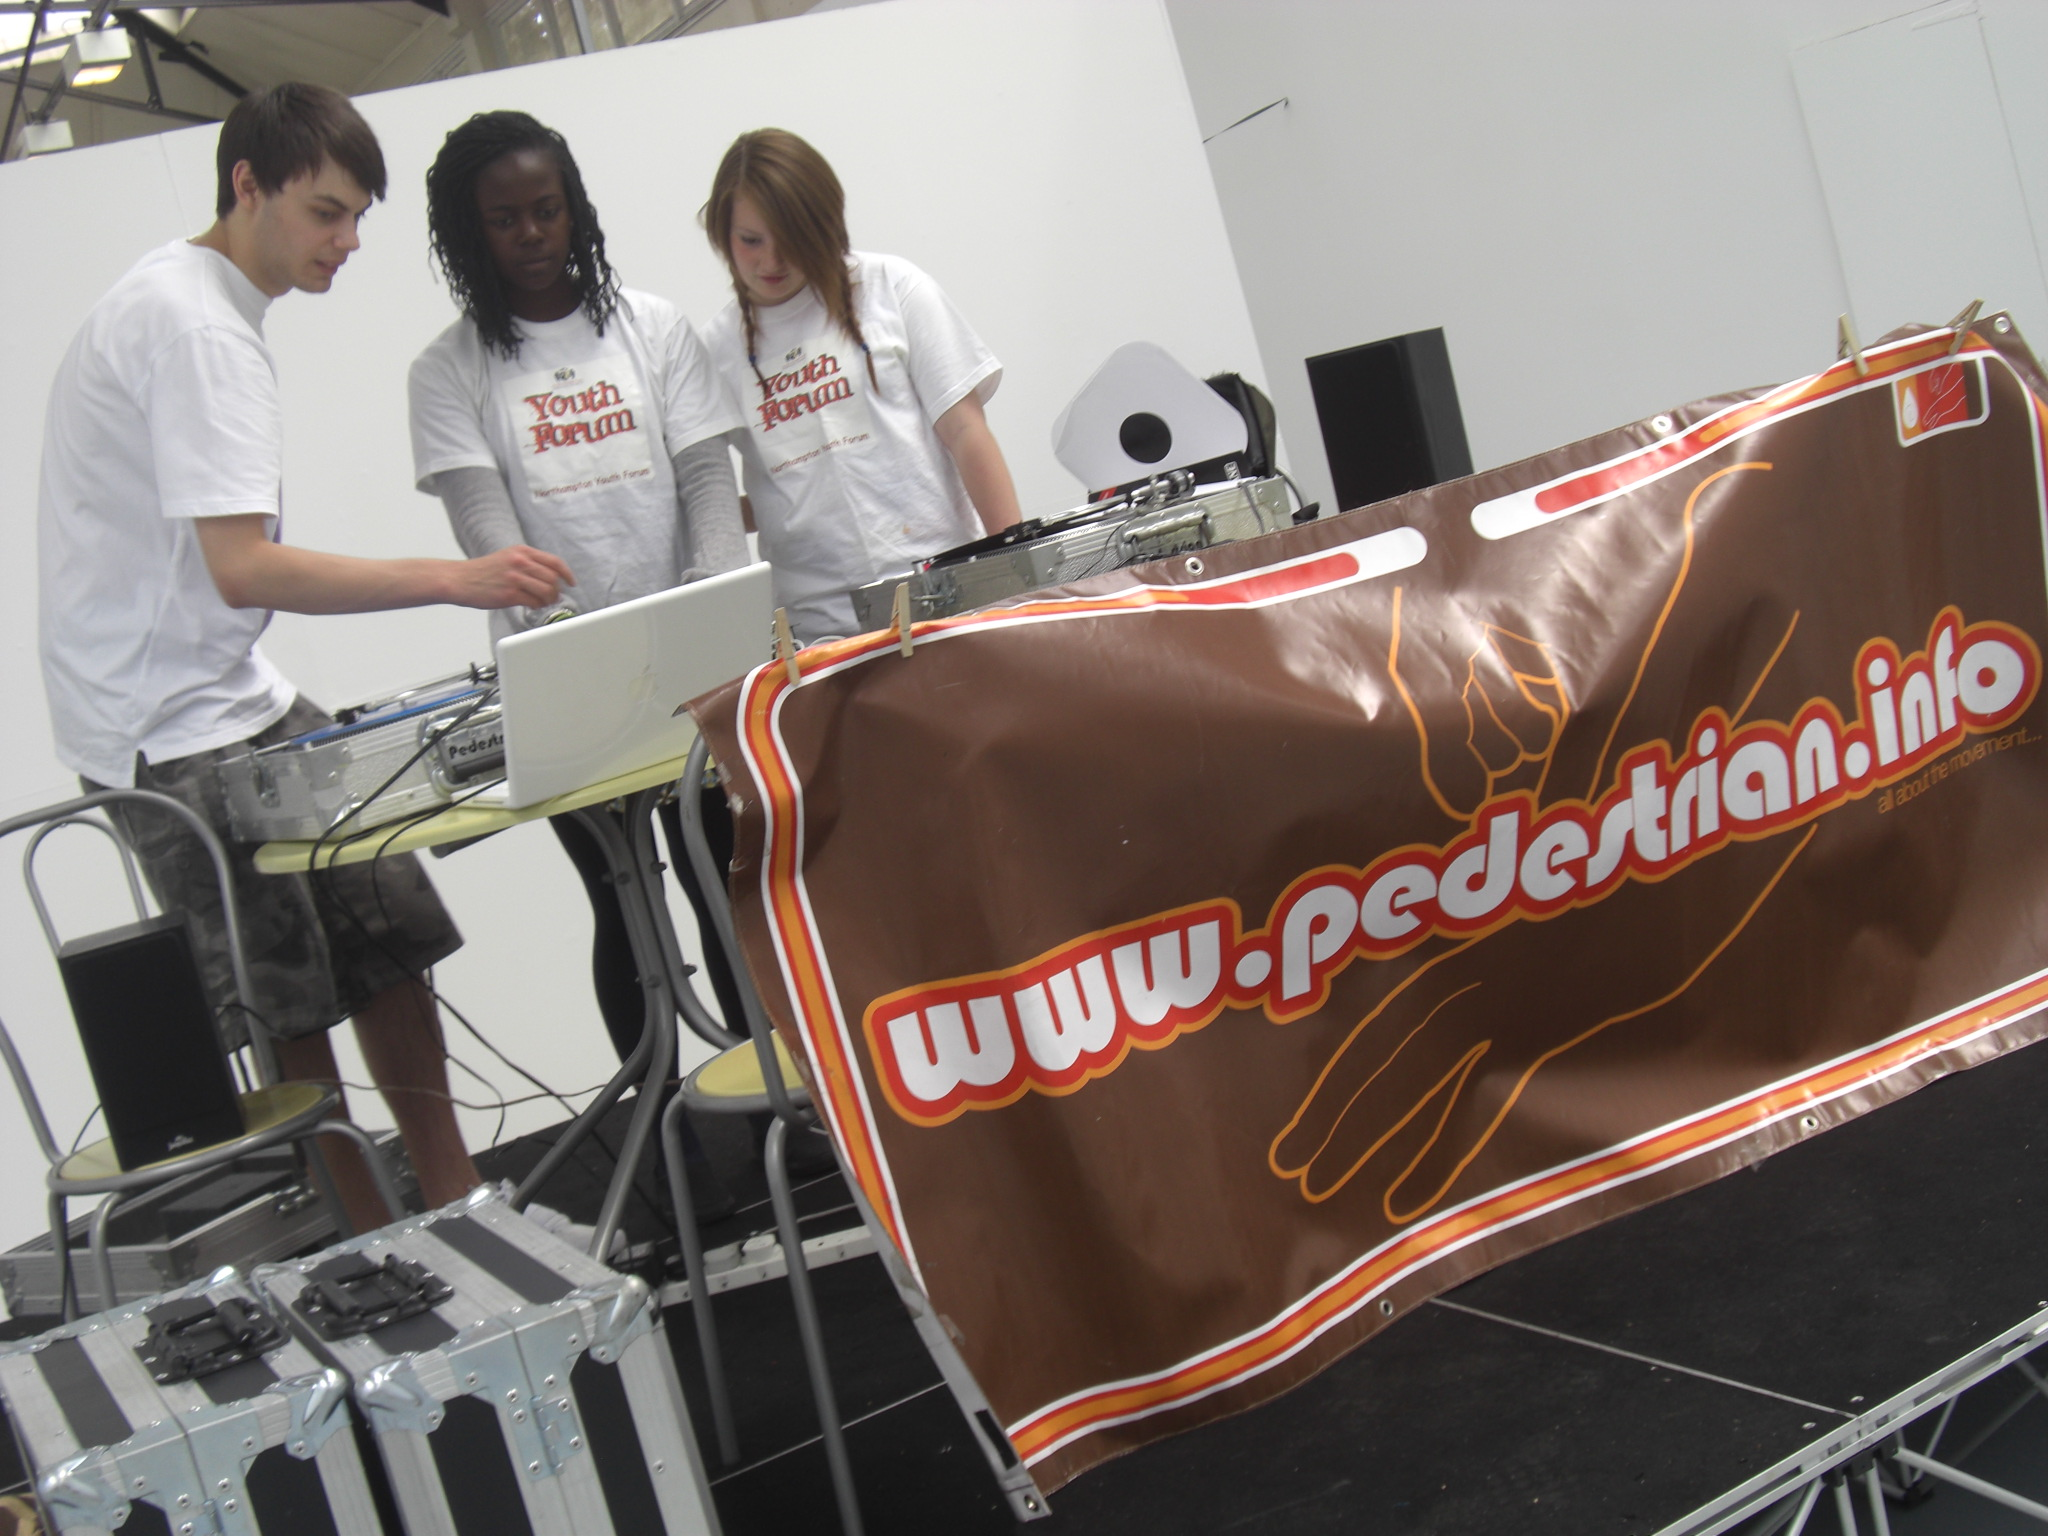 2 children learning how to Dj. Pedestrian website banner hangs from the table in front of them.